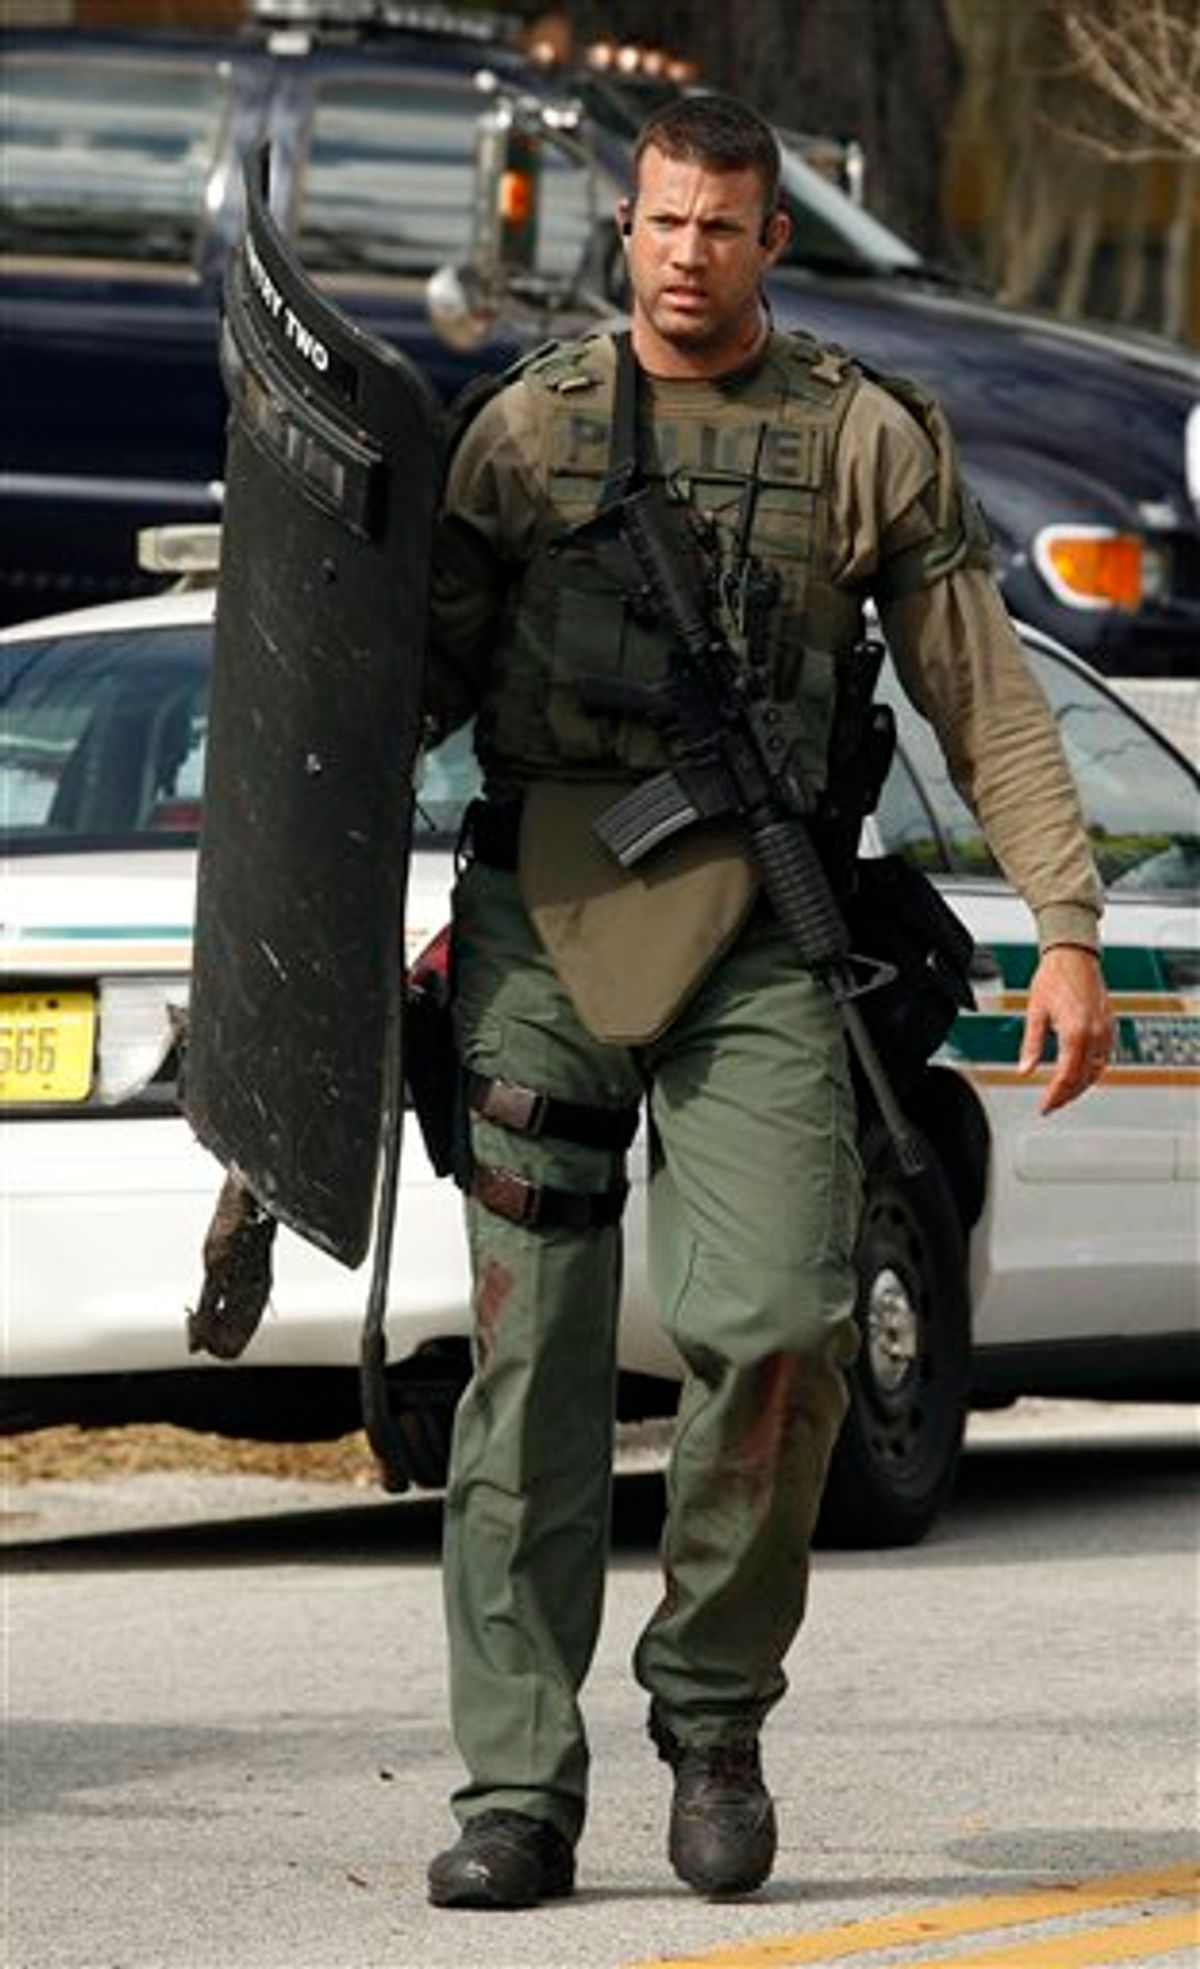 A heavily armed SWAT team member walks away from the scene where three officers were shot Monday, Jan. 24, 2011 in south St. Petersburg, Fla.  Police say a gunman suspected of killing two Florida police officers and wounding a U.S. marshal during a shootout has been found dead. St. Petersburg Police spokesman Michael Puetz says the suspect was found dead when officers went into the home Monday afternoon, about six hours after the shootout. Puetz said officers originally went to the home to arrest 39-year-old Hydra Lacy Jr.  (AP Photo/Chris O'Meara) (AP)